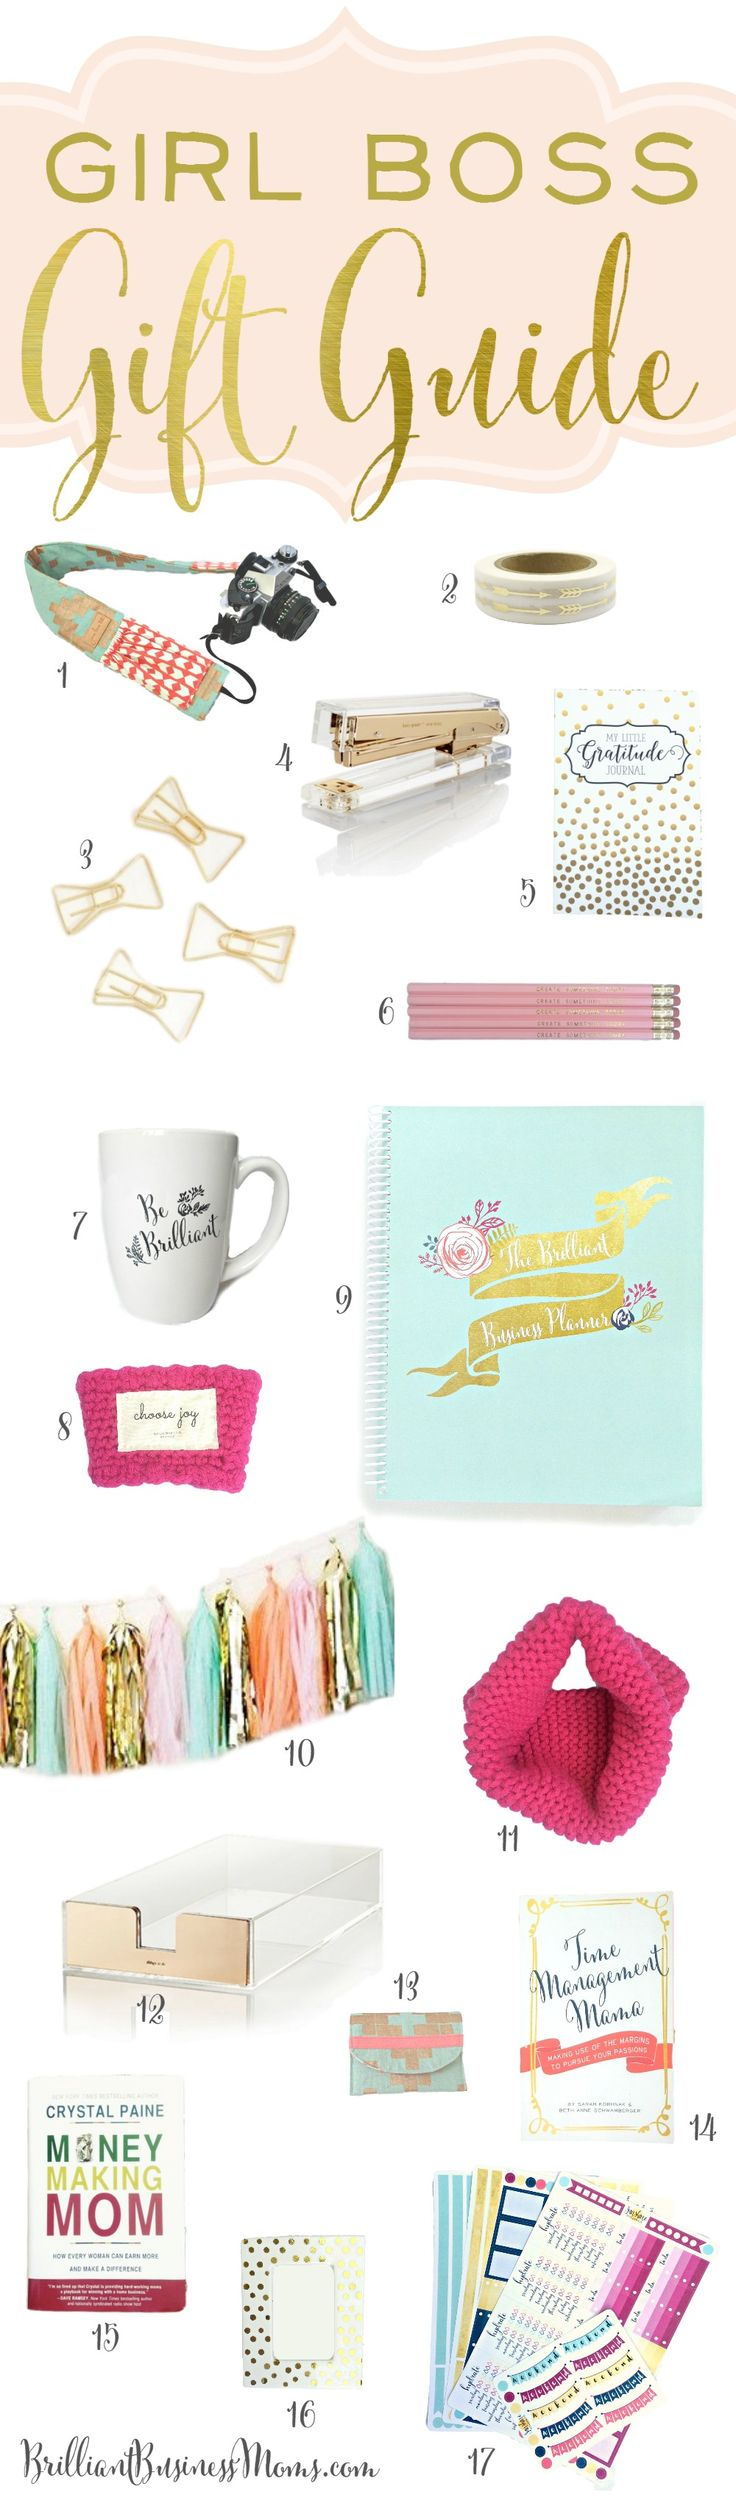 The 2015 Girl Boss Gift Guide  – We're Giving it All Away!